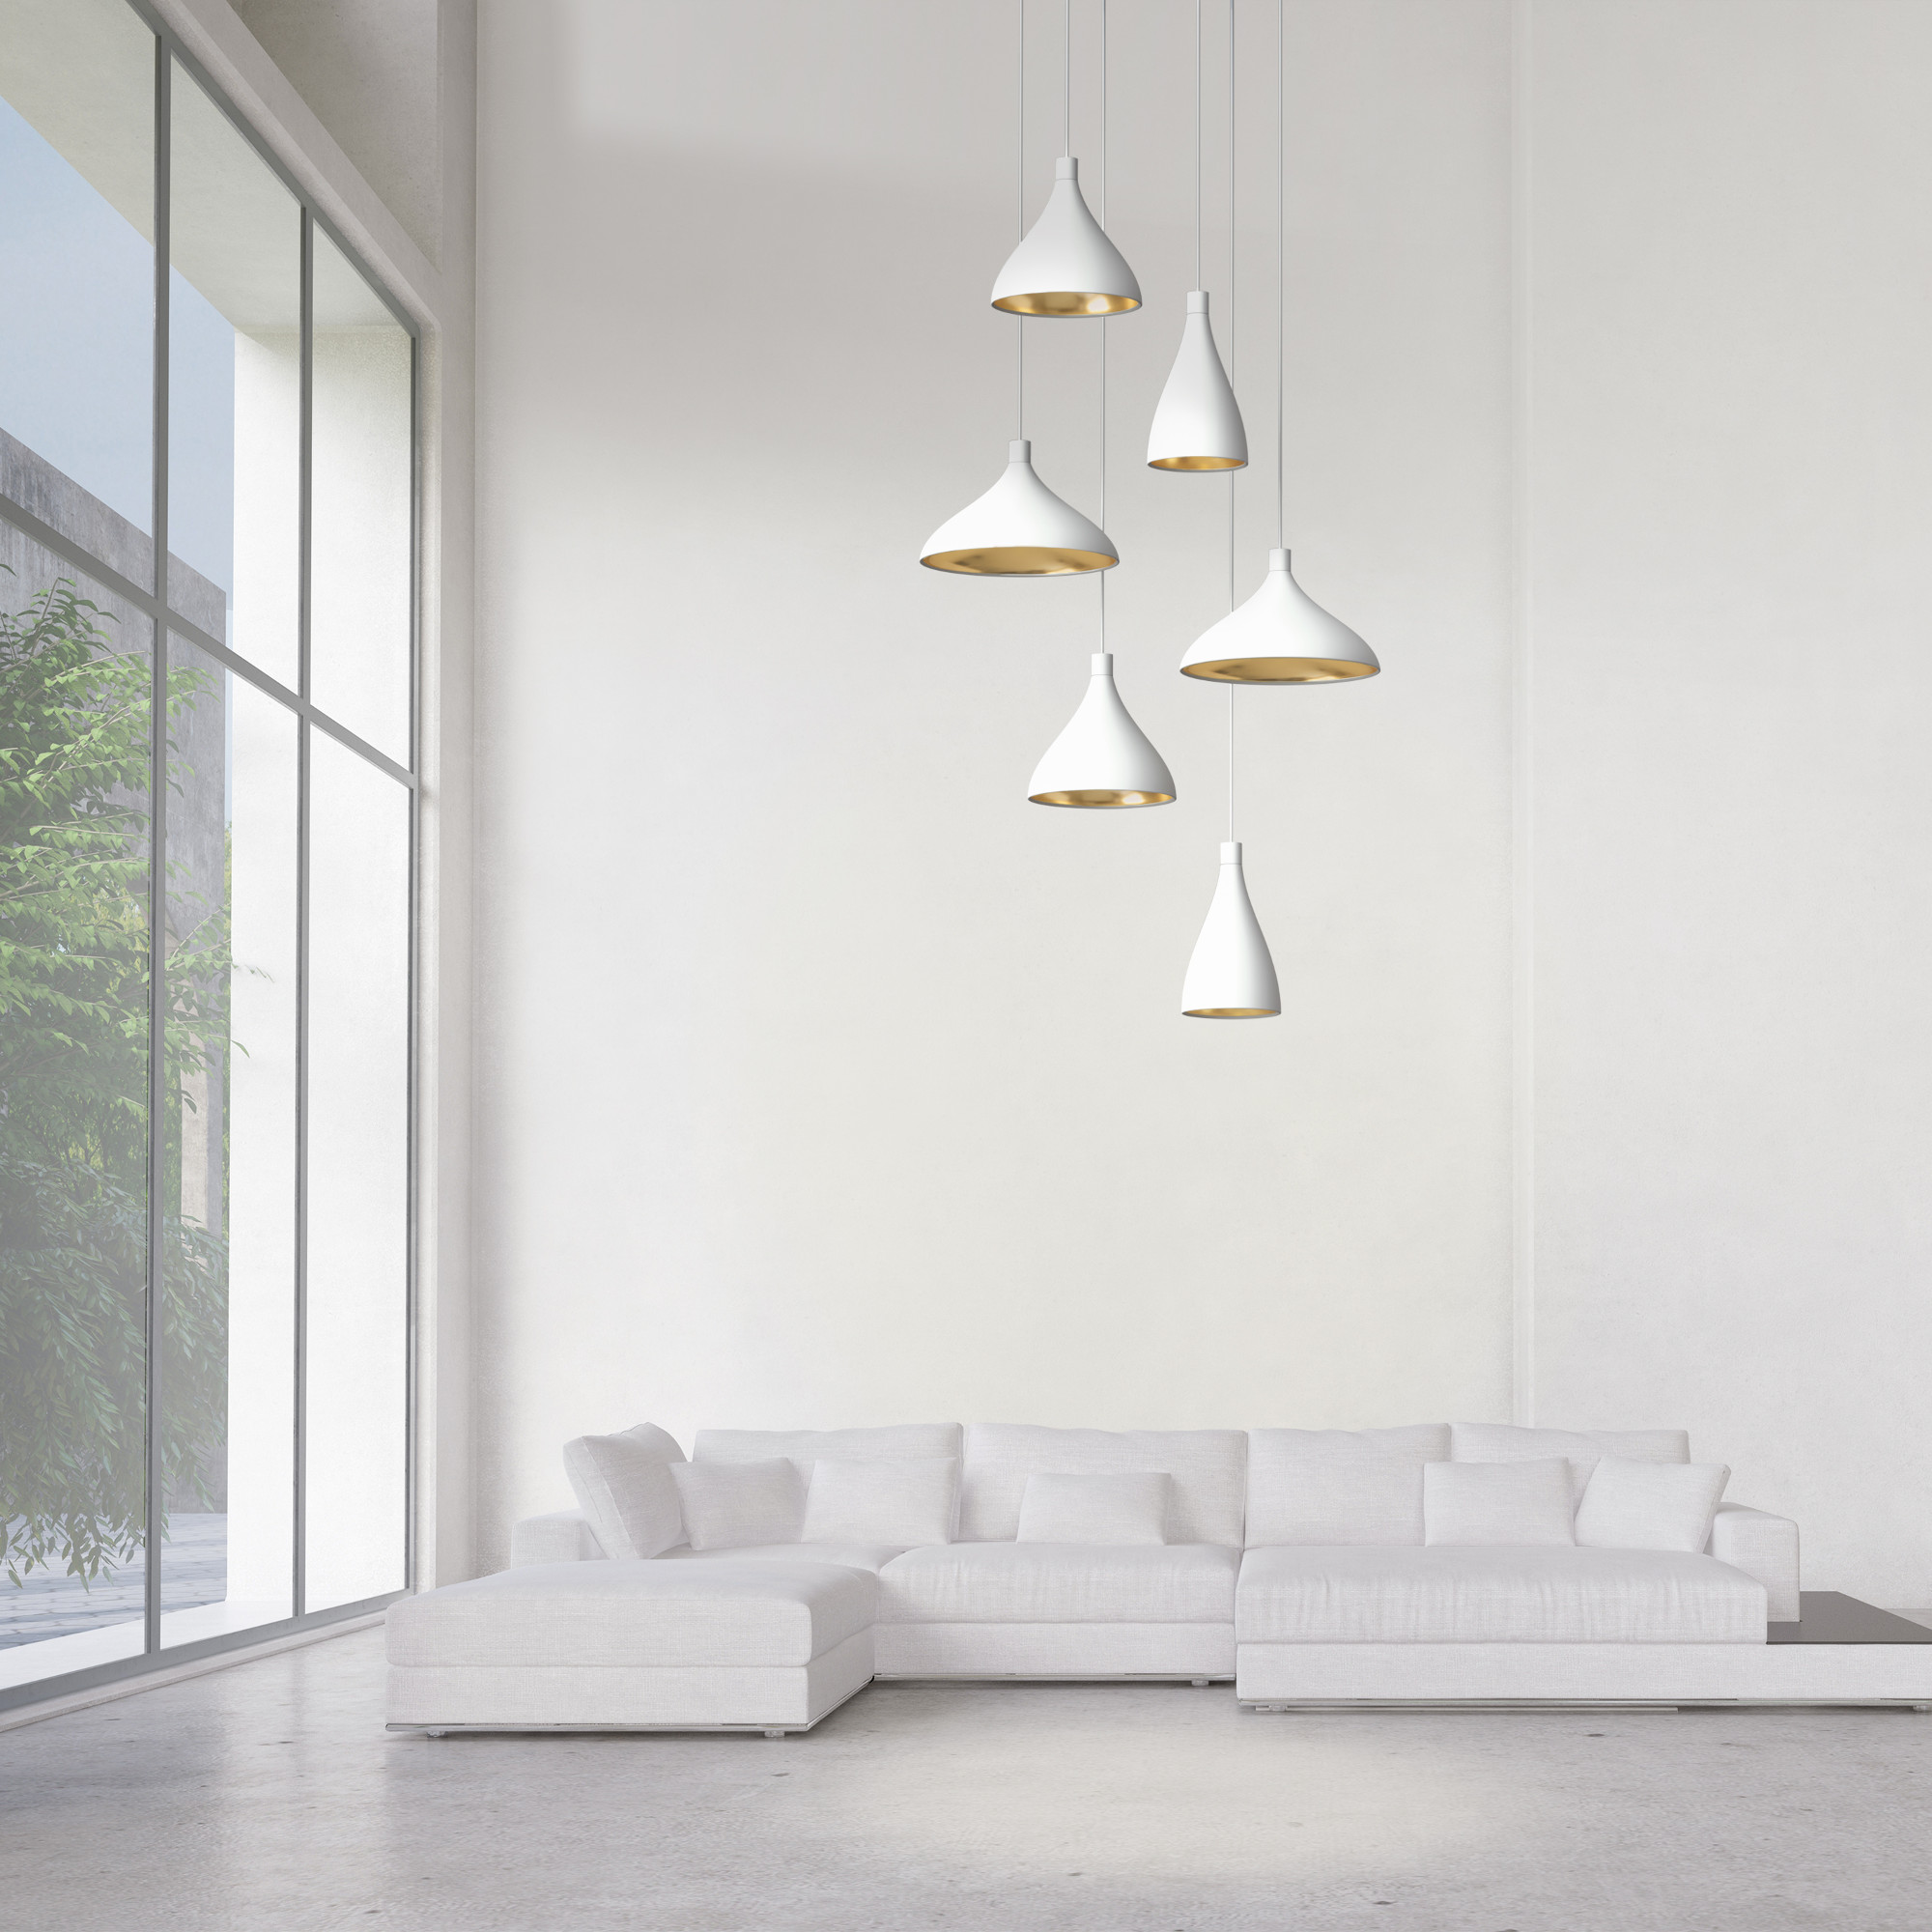 Swell Chandelier By Pablo